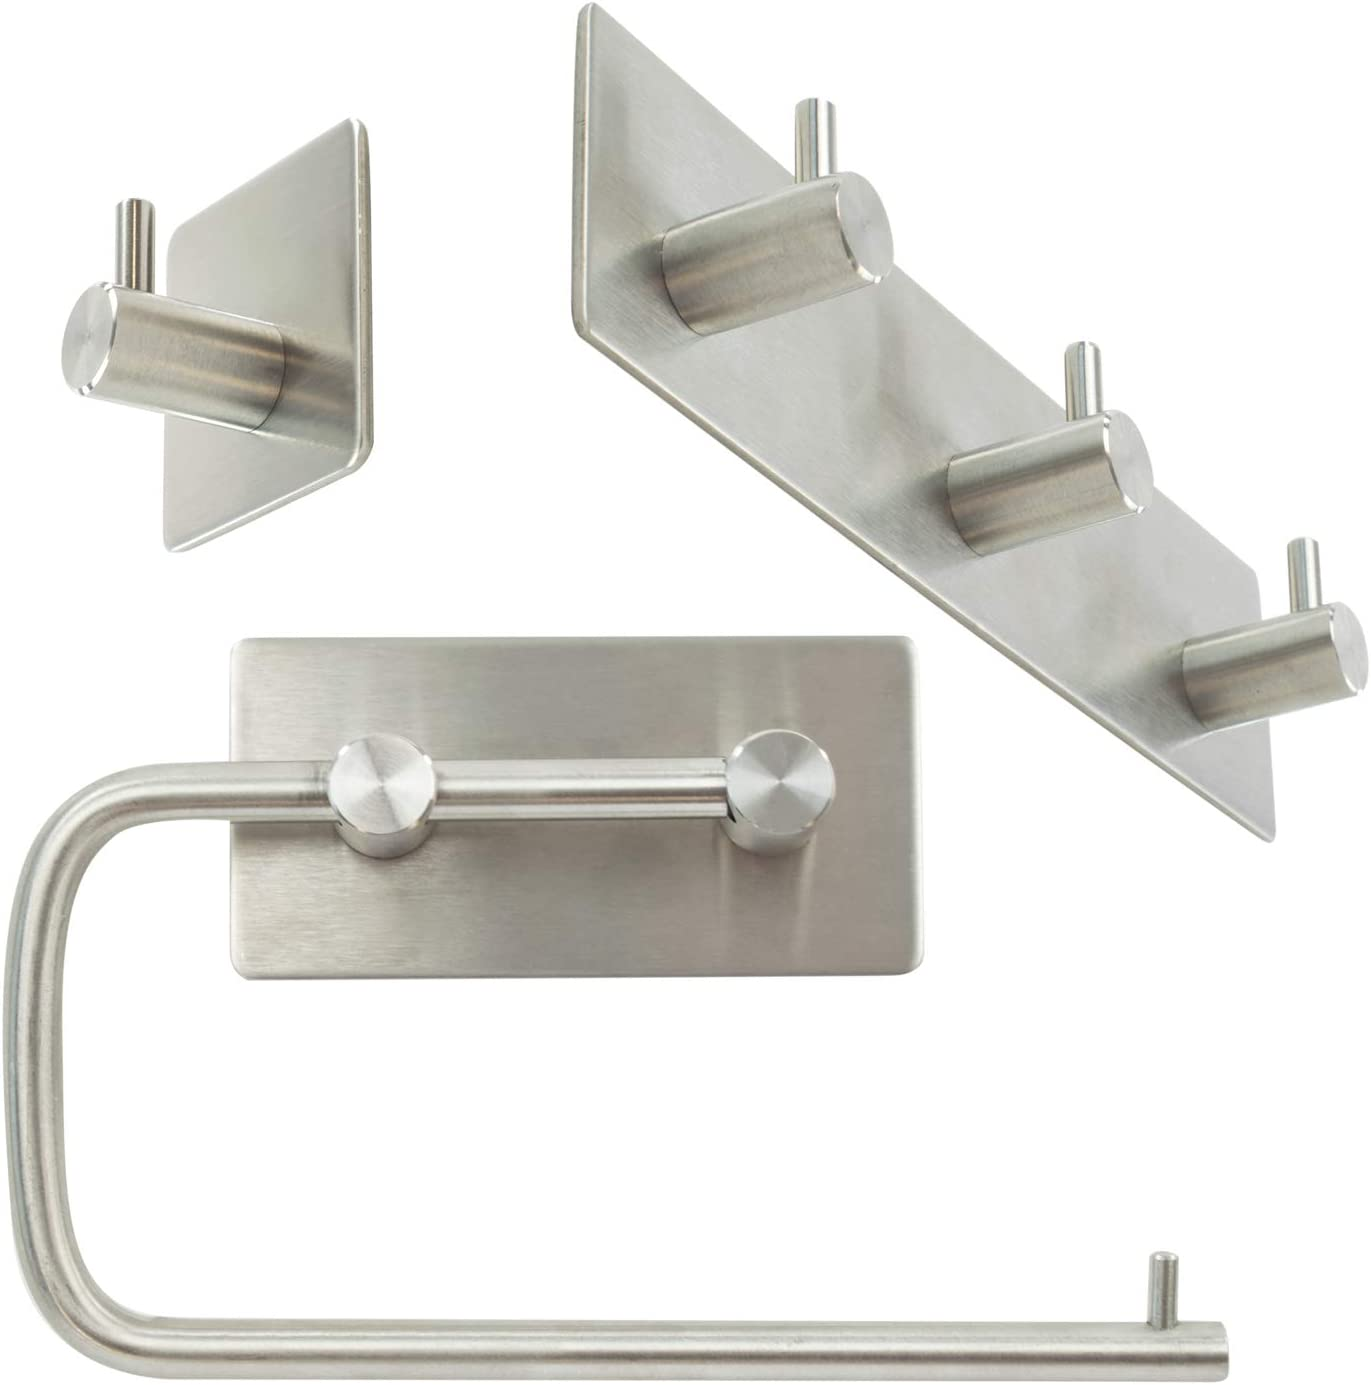 Cloakroom Perfect for Shower Toilet Roll TRIXES Toilet Paper Roll Holder and 2 Towel Hooks for Bathroom Kitchen Stainless Steel Accessories Self Adhesive Wall Mounted No Drill Needed